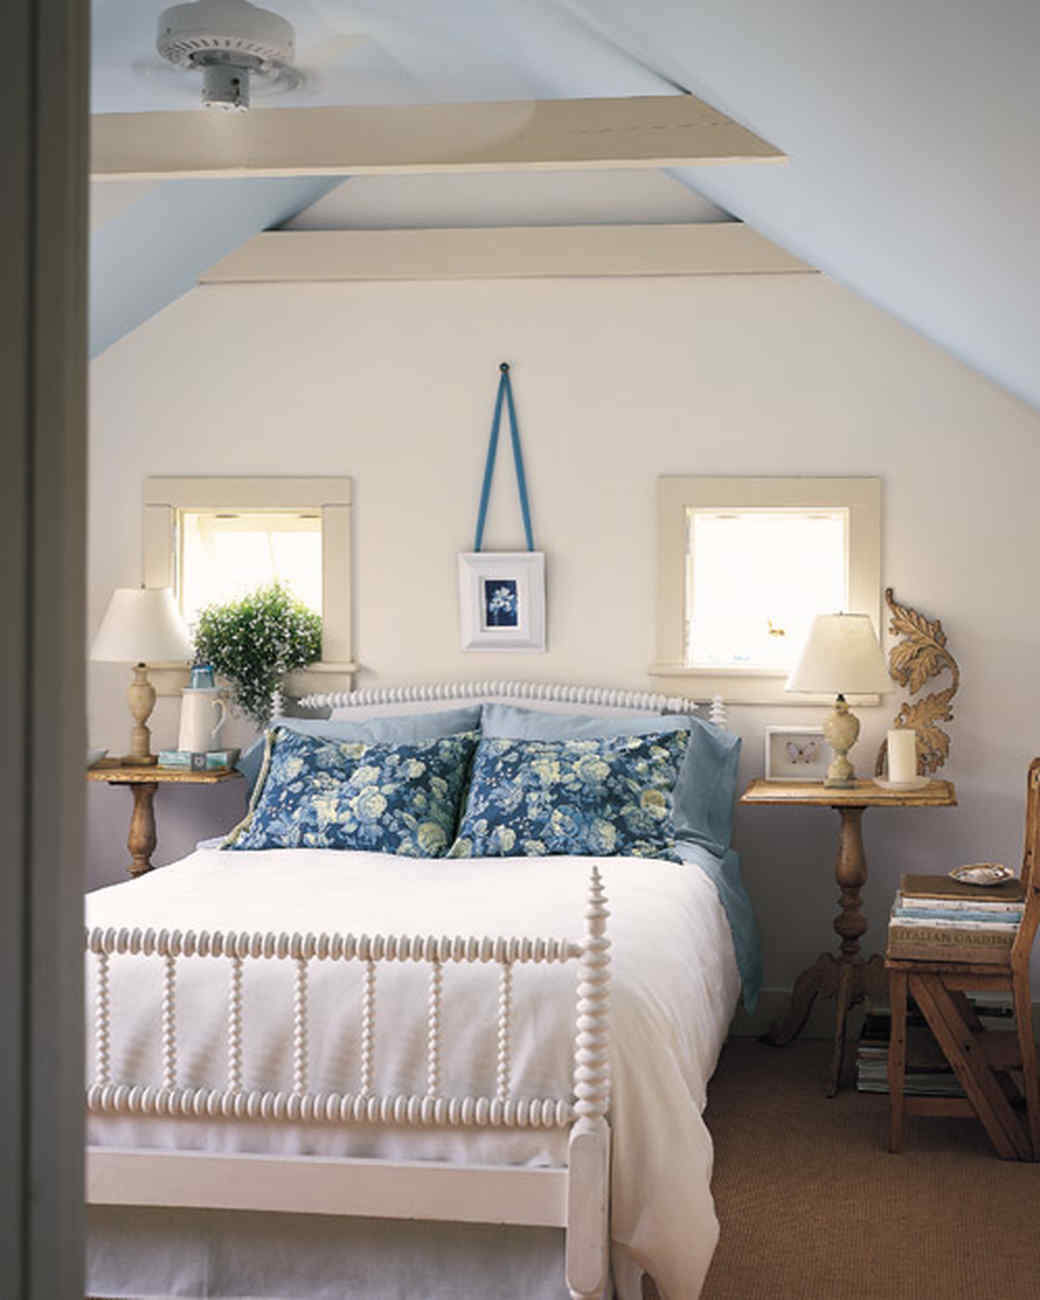 Bedroom Paint: Martha Stewart